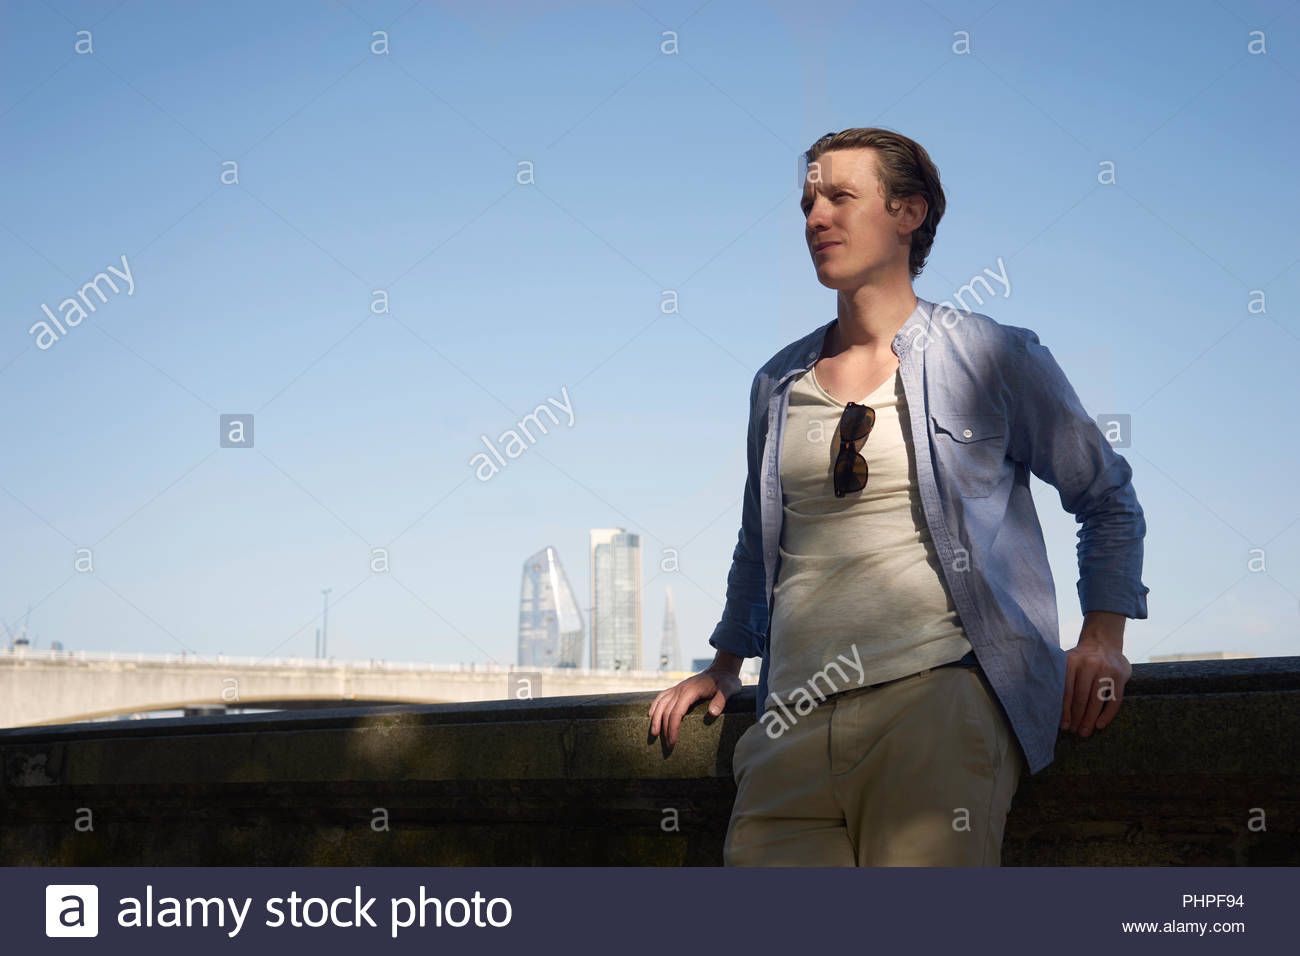 Mid adult man in shadow - Stock Image